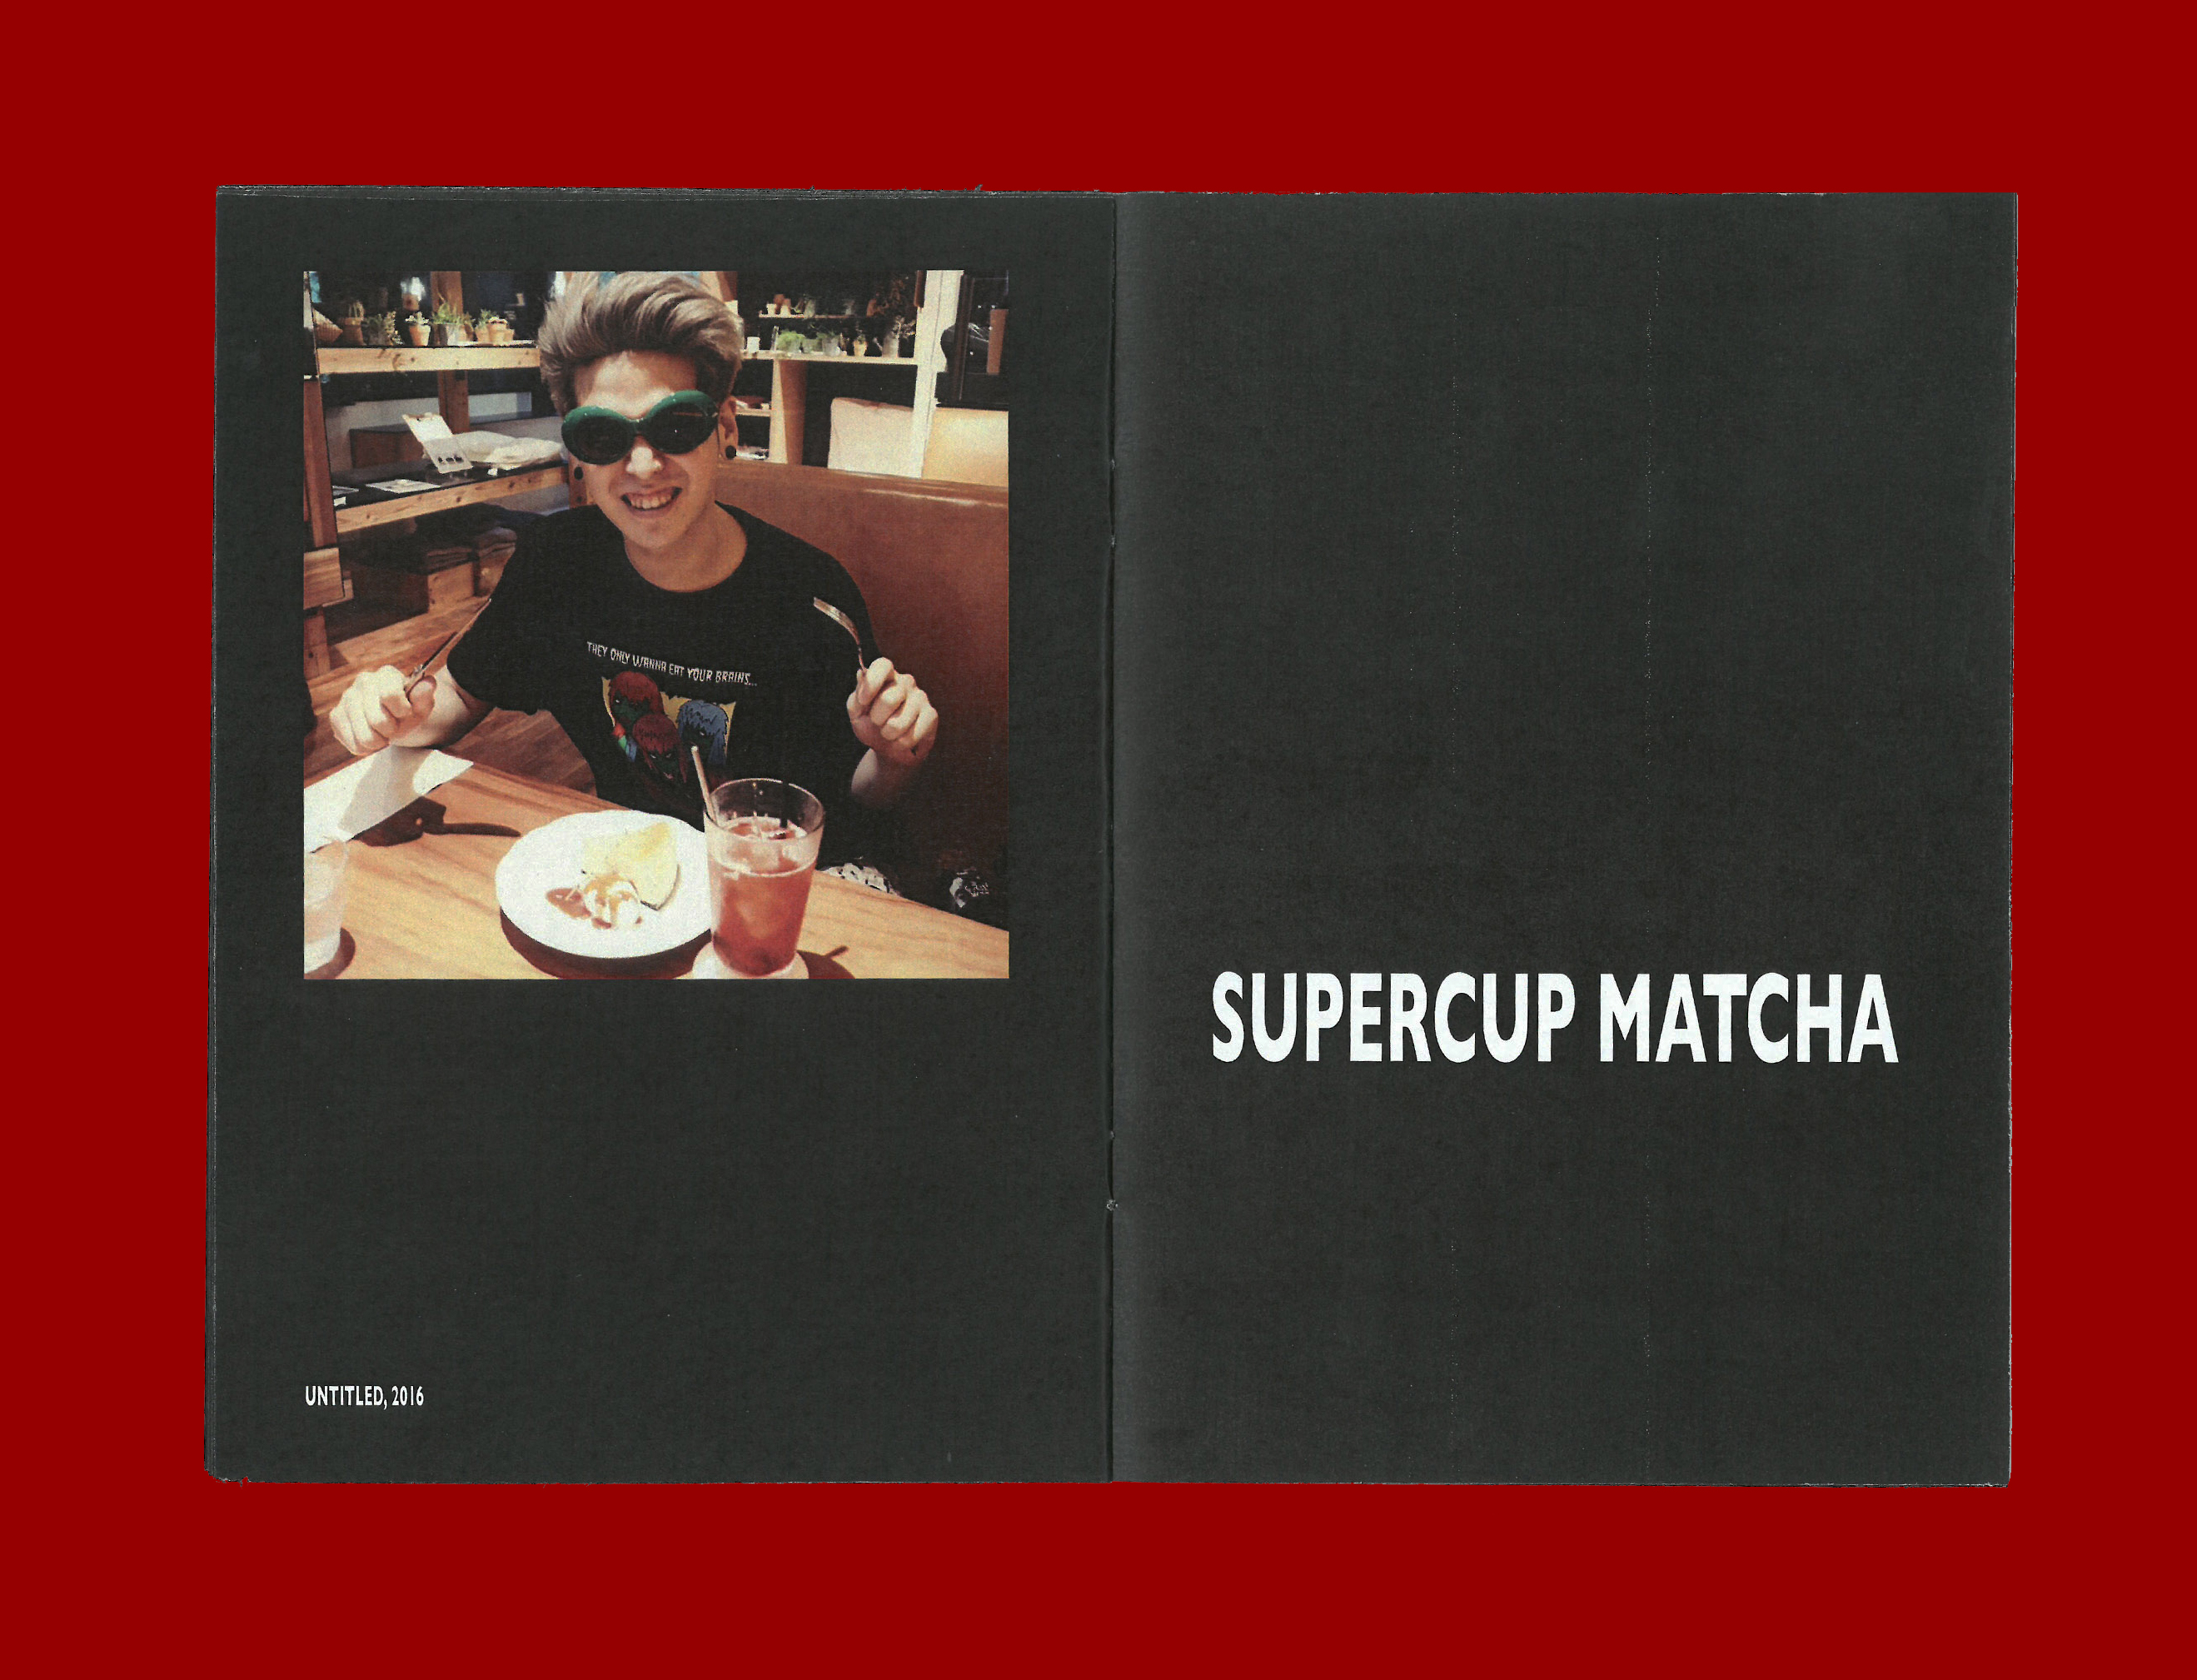 Printed Matter by Ron Wan. Fanzine: Desserttime, featuring Untitled, 2016 by Supercup Matcha